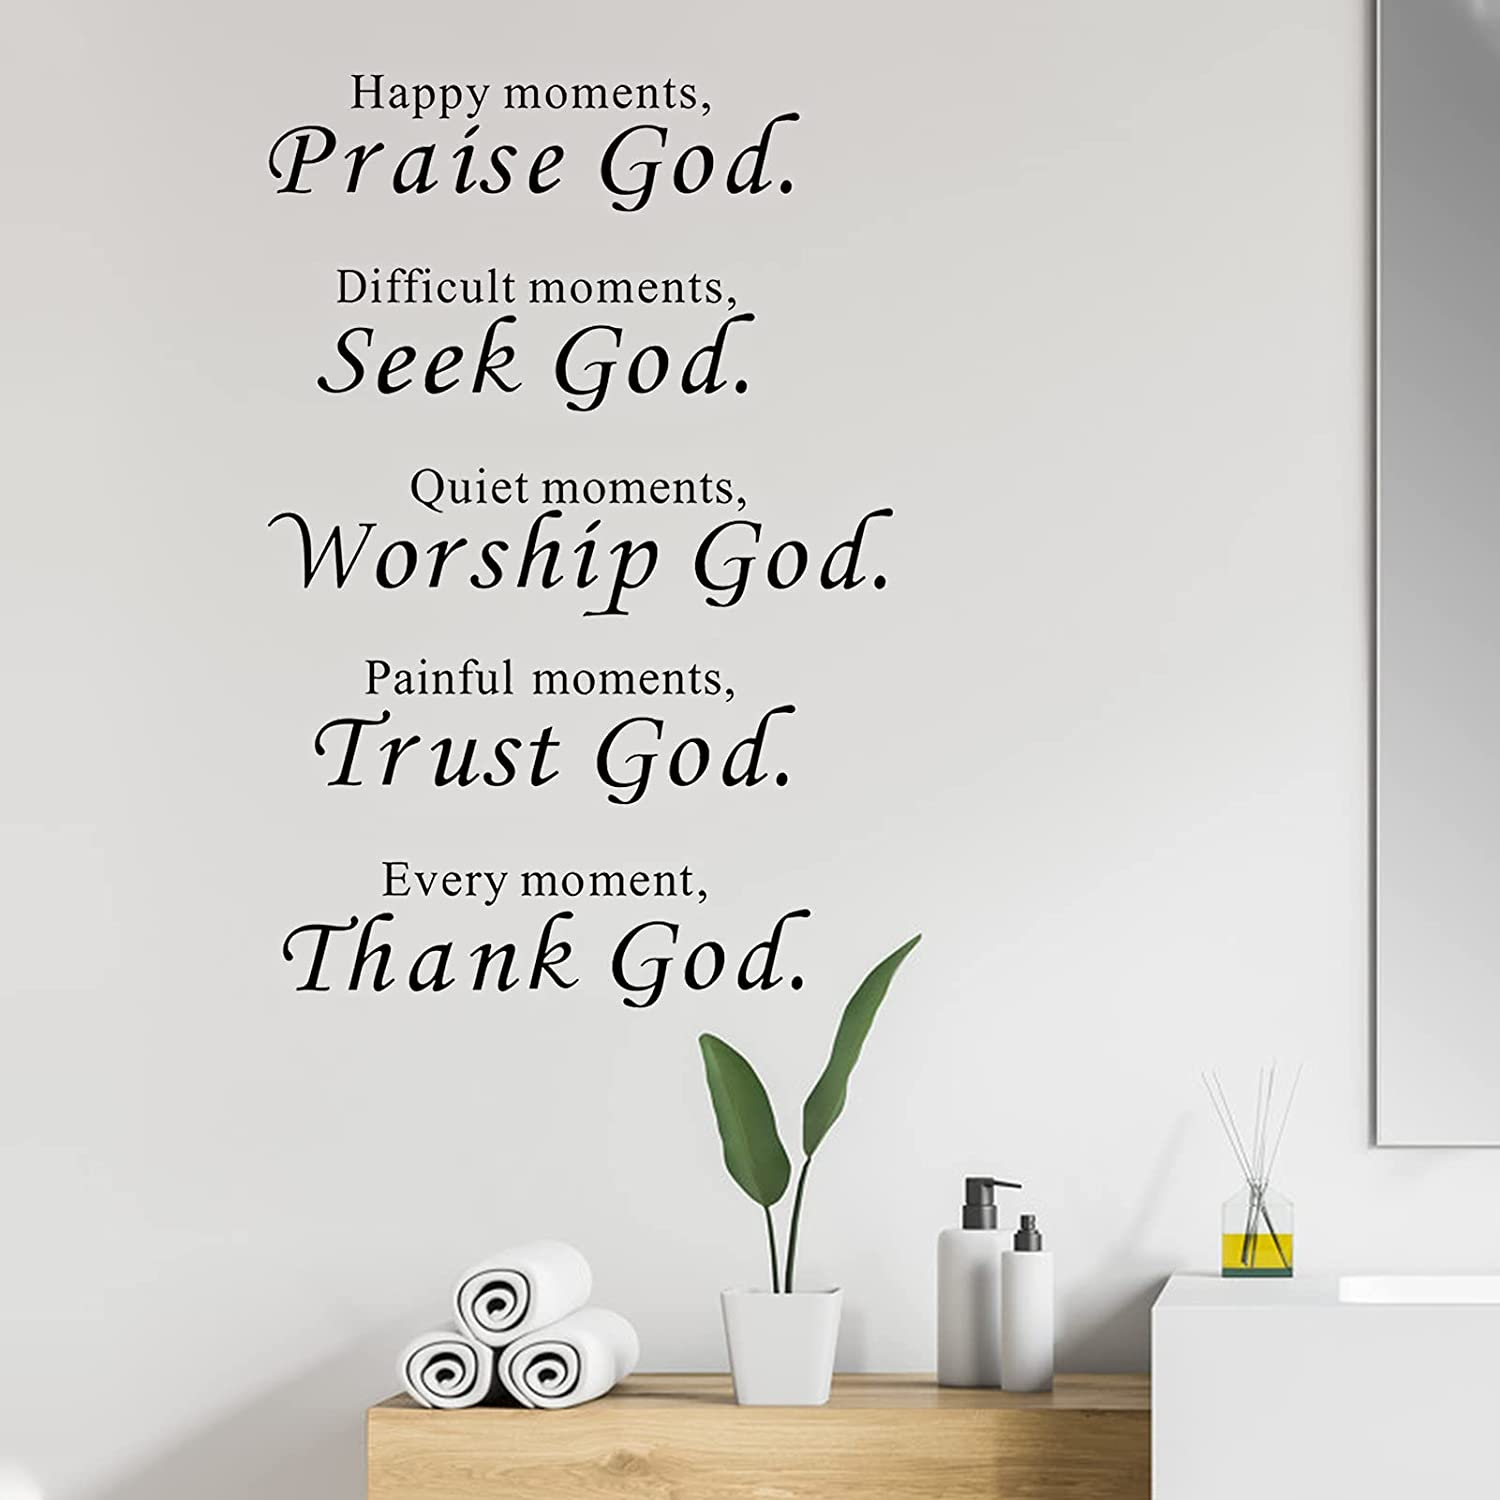 Religious Quotes Christian Inspirational Scripture Wall Sticker, Quote Sign Praise God DIY Art Saying Decor Mural, Vinyl Bible Verse Decal for Kitchen Bedroom Nursery Office Home Decoration